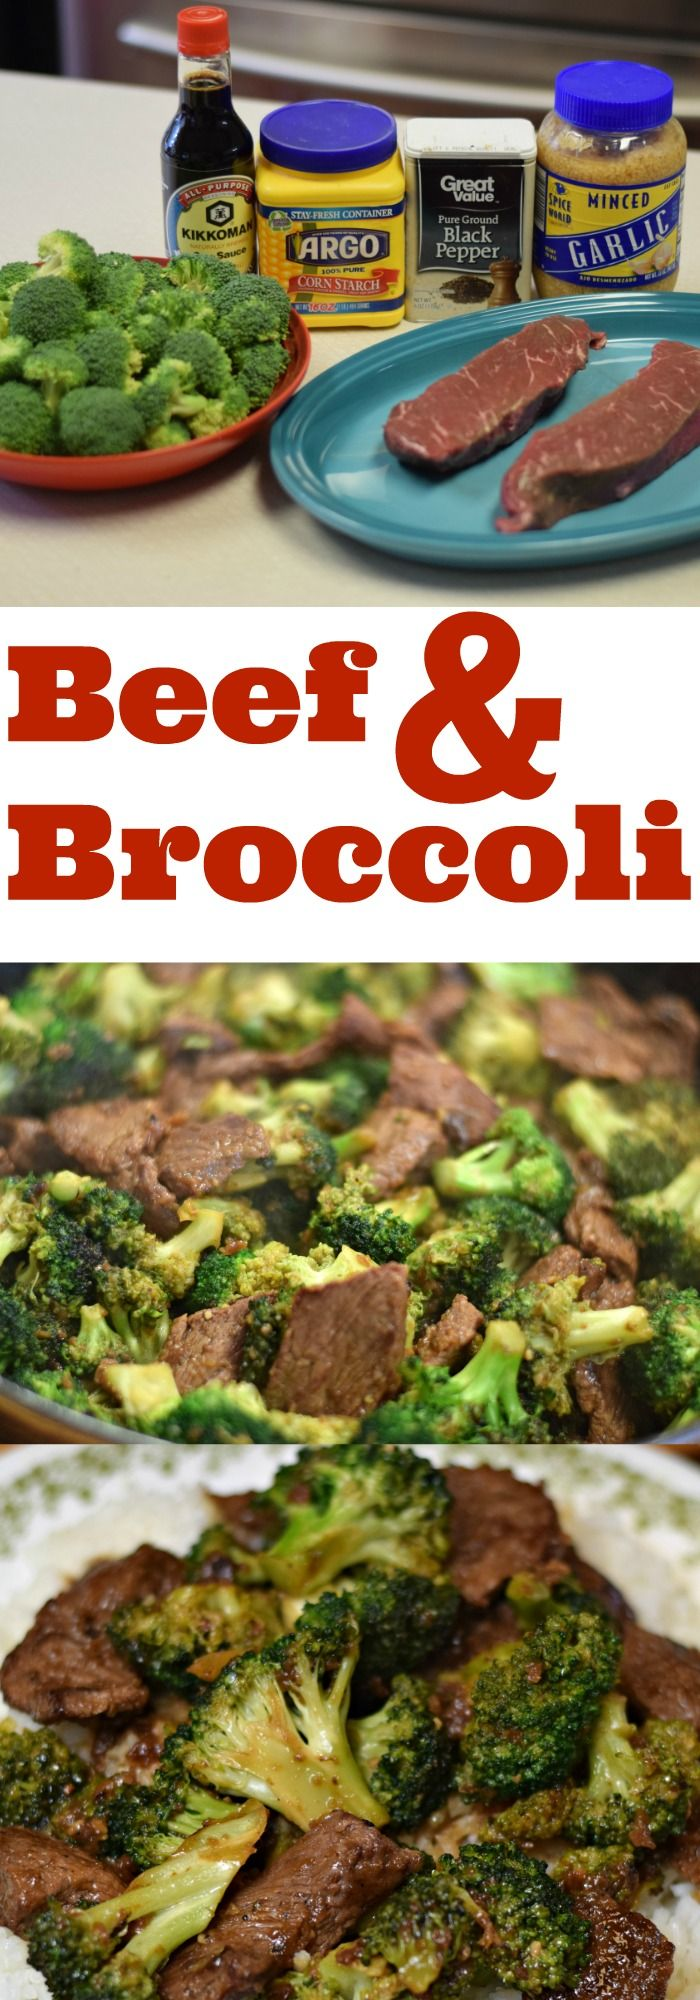 Beef and Broccoli - Southern Plate